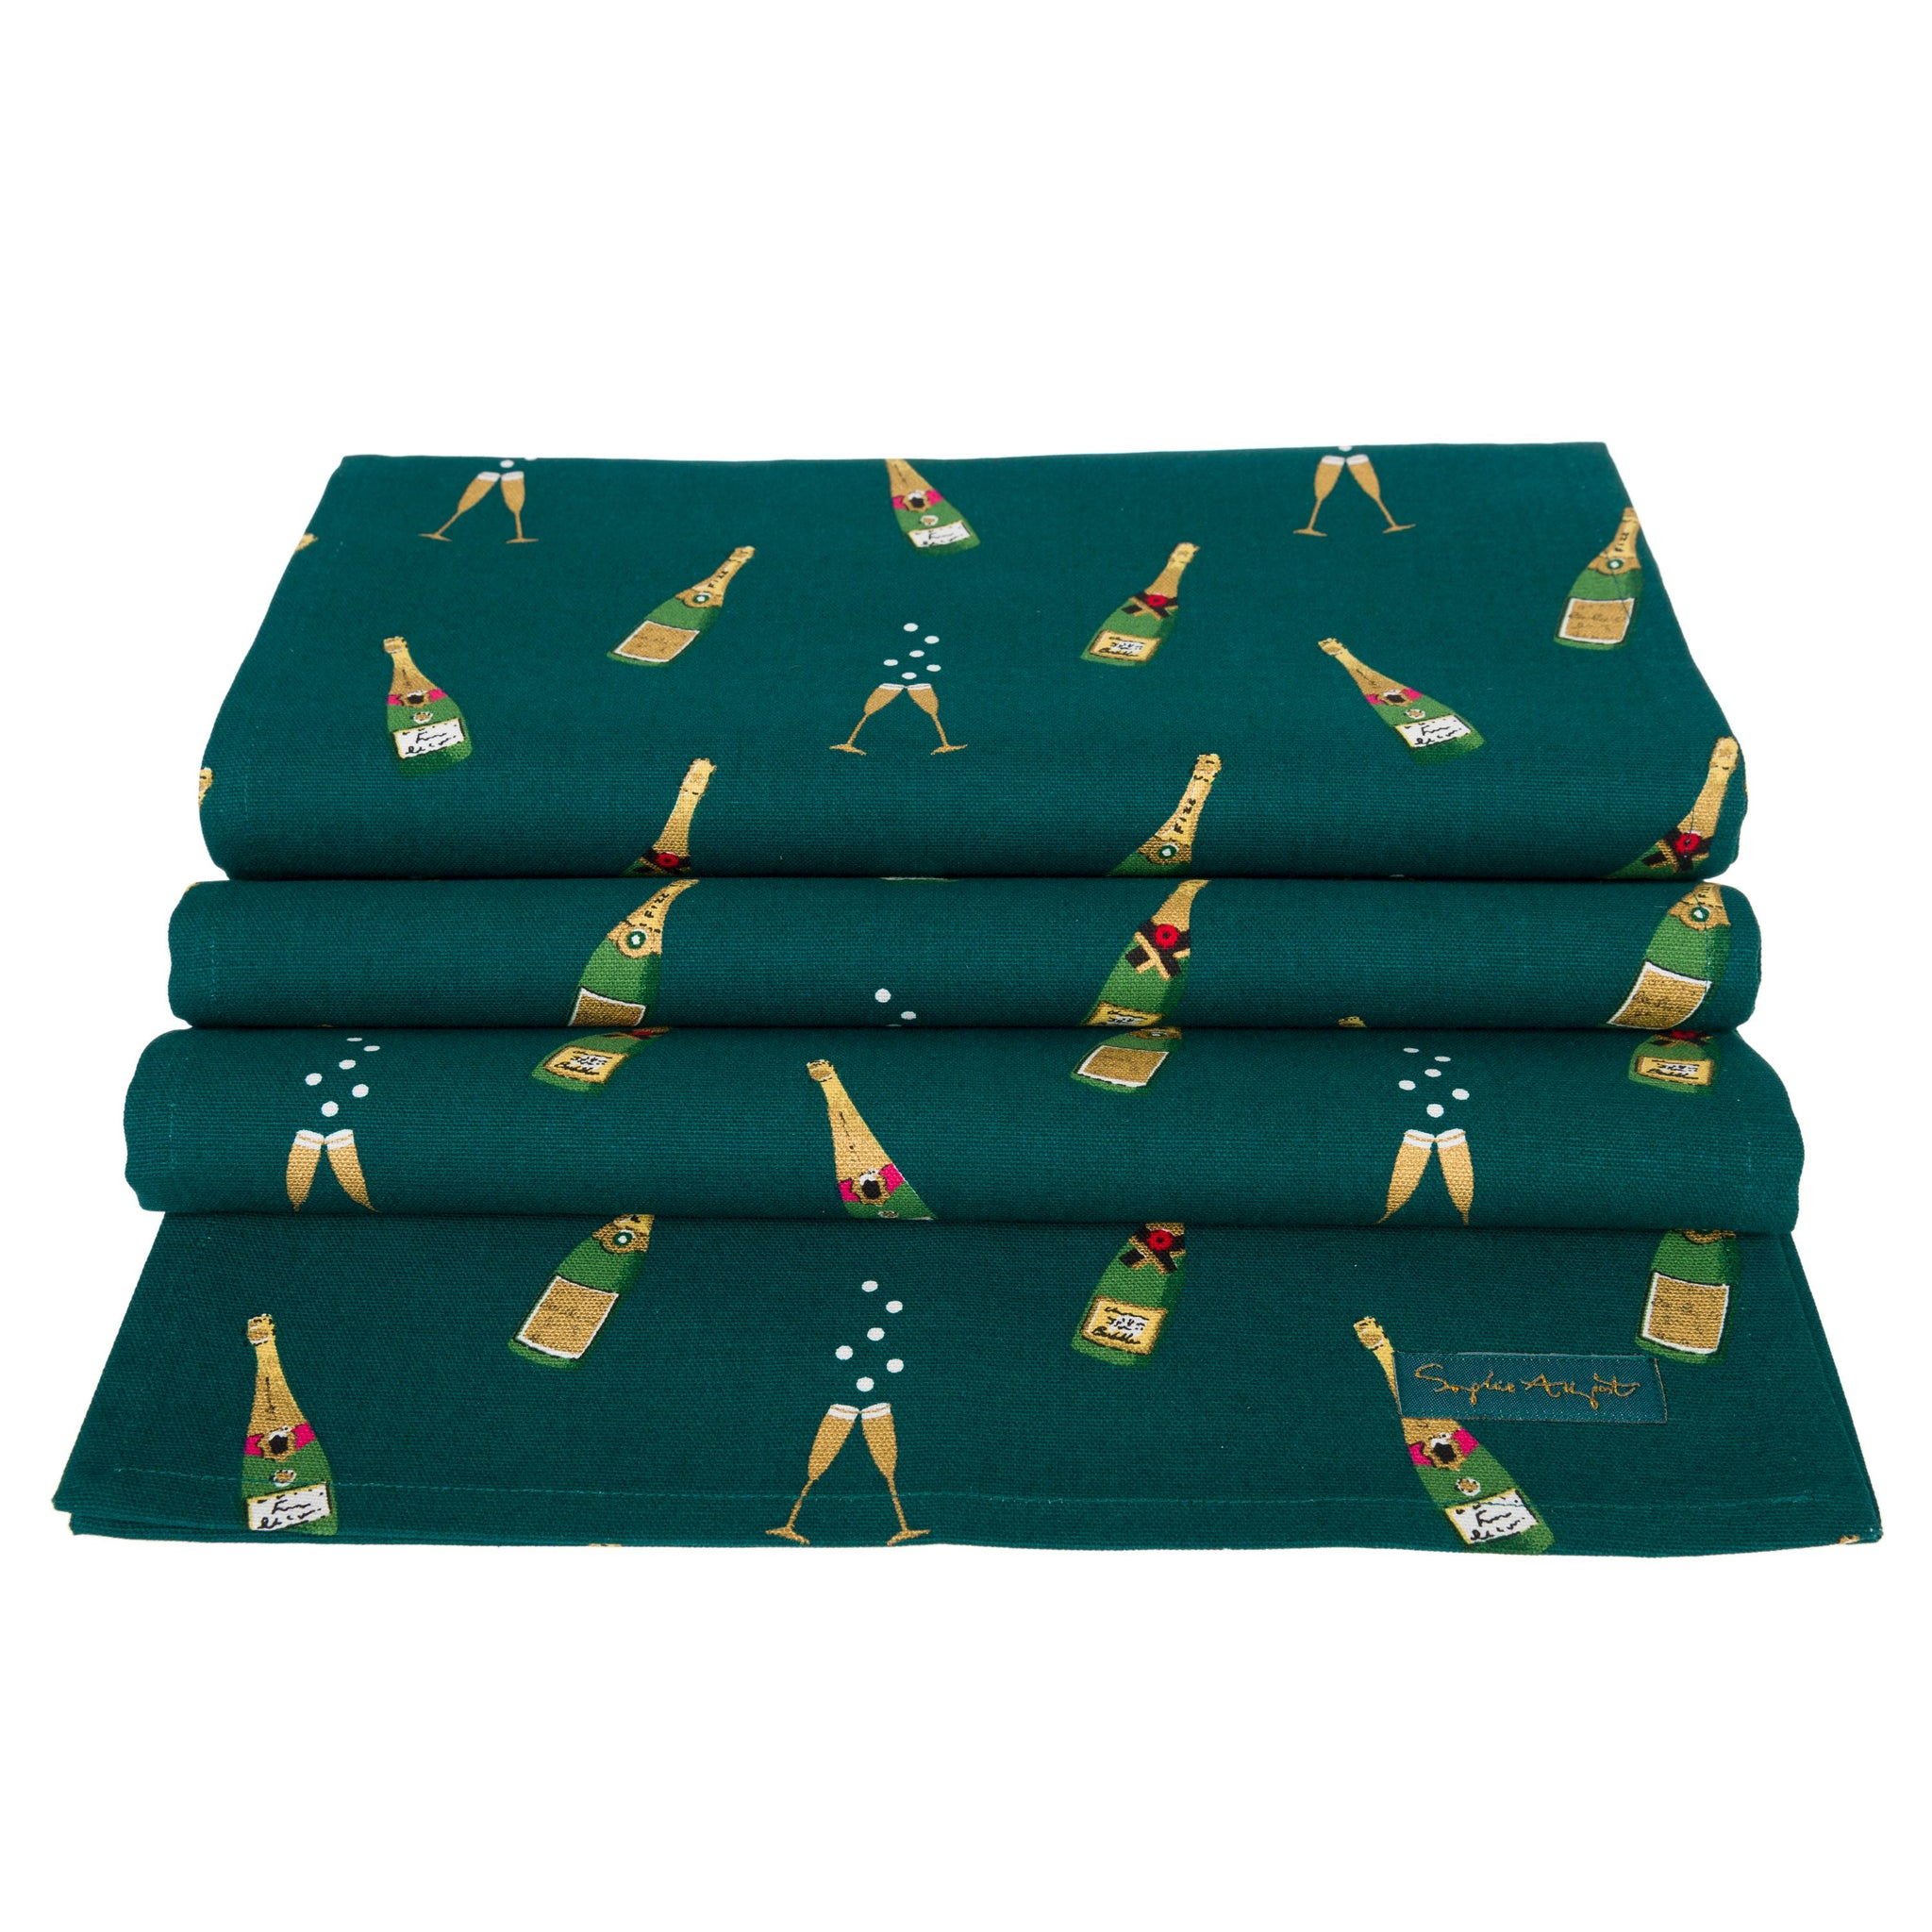 Champagne flutes and bottles of fizz pop out from the teal green background on this superb celebration table runner. Ideal for birthdays, engagements...or any other celebration!  W35 x L280cm 100% cotton Machine washable at 30 degrees